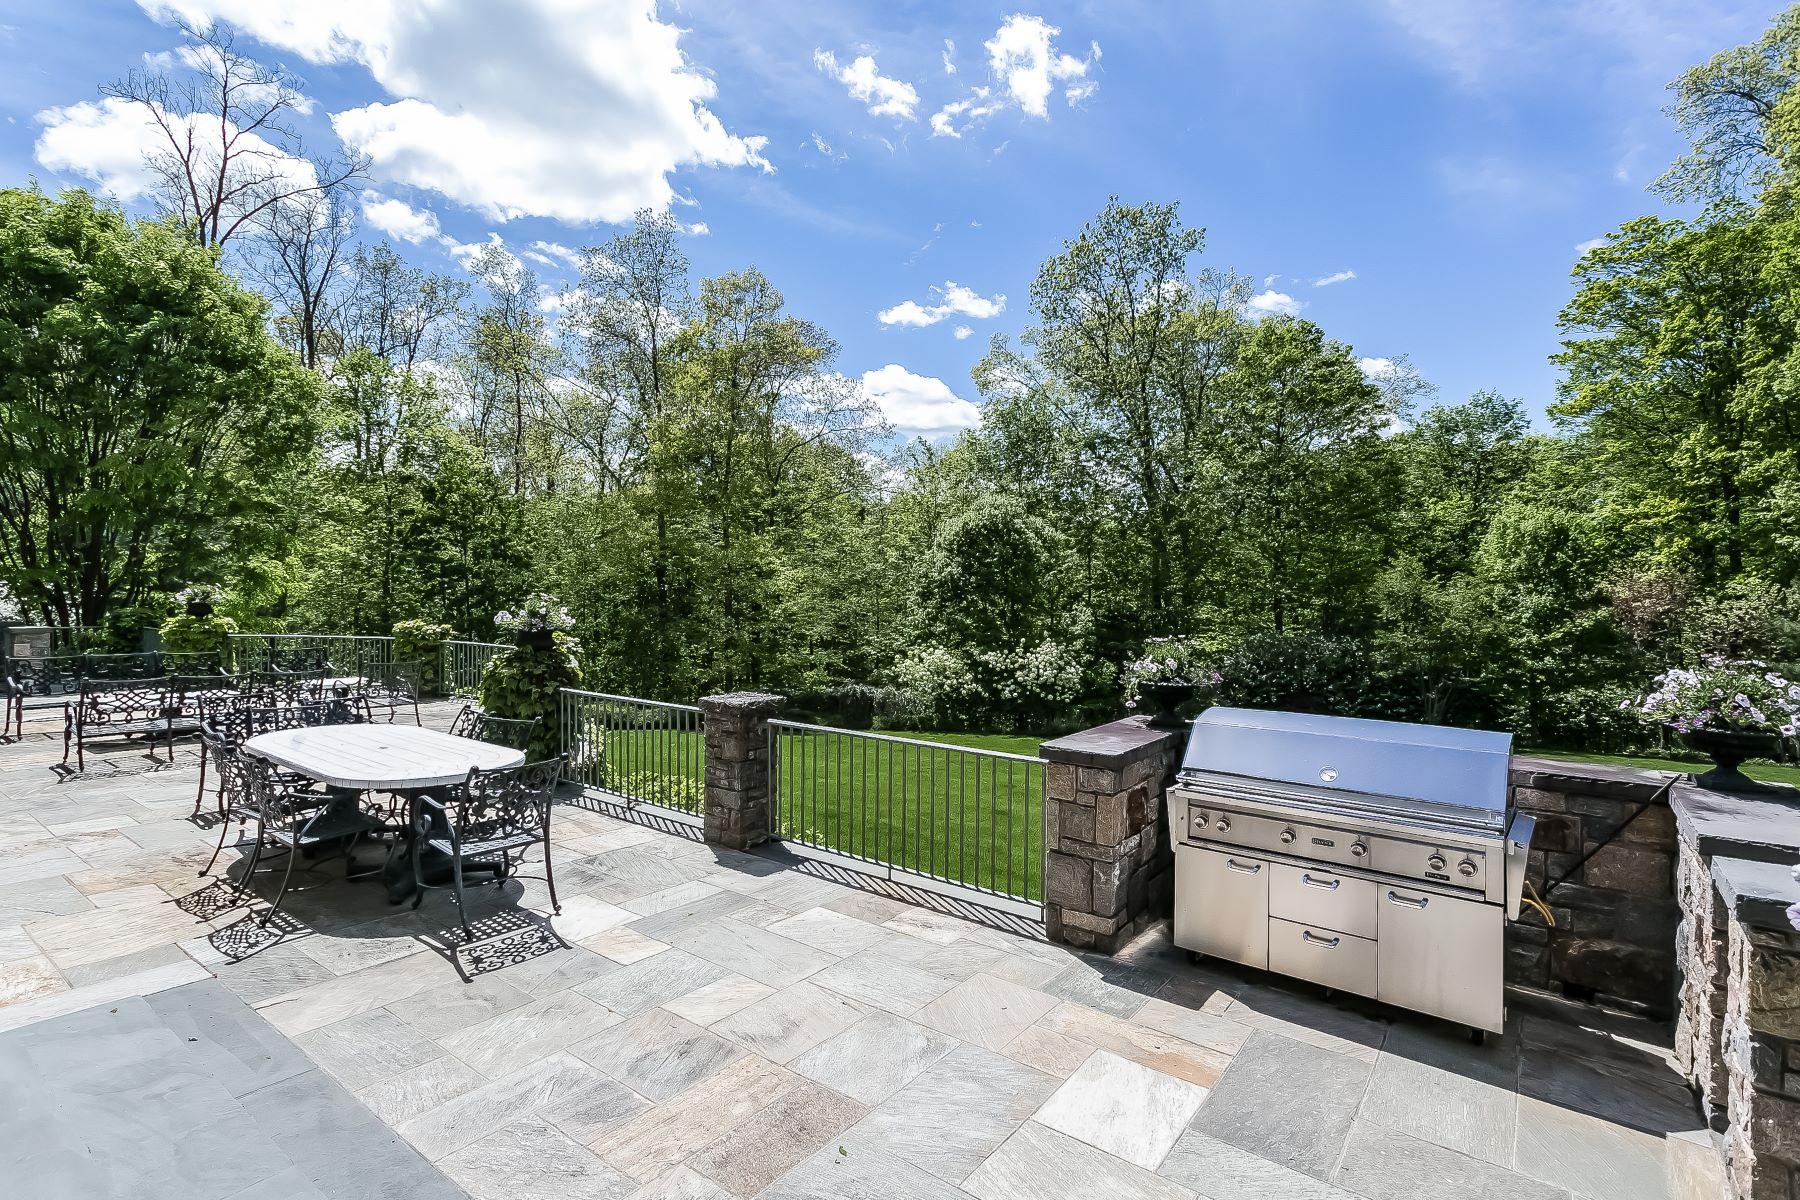 Additional photo for property listing at 16 Cerf Lane 16 Cerf Lane Mount Kisco, New York 10549 United States